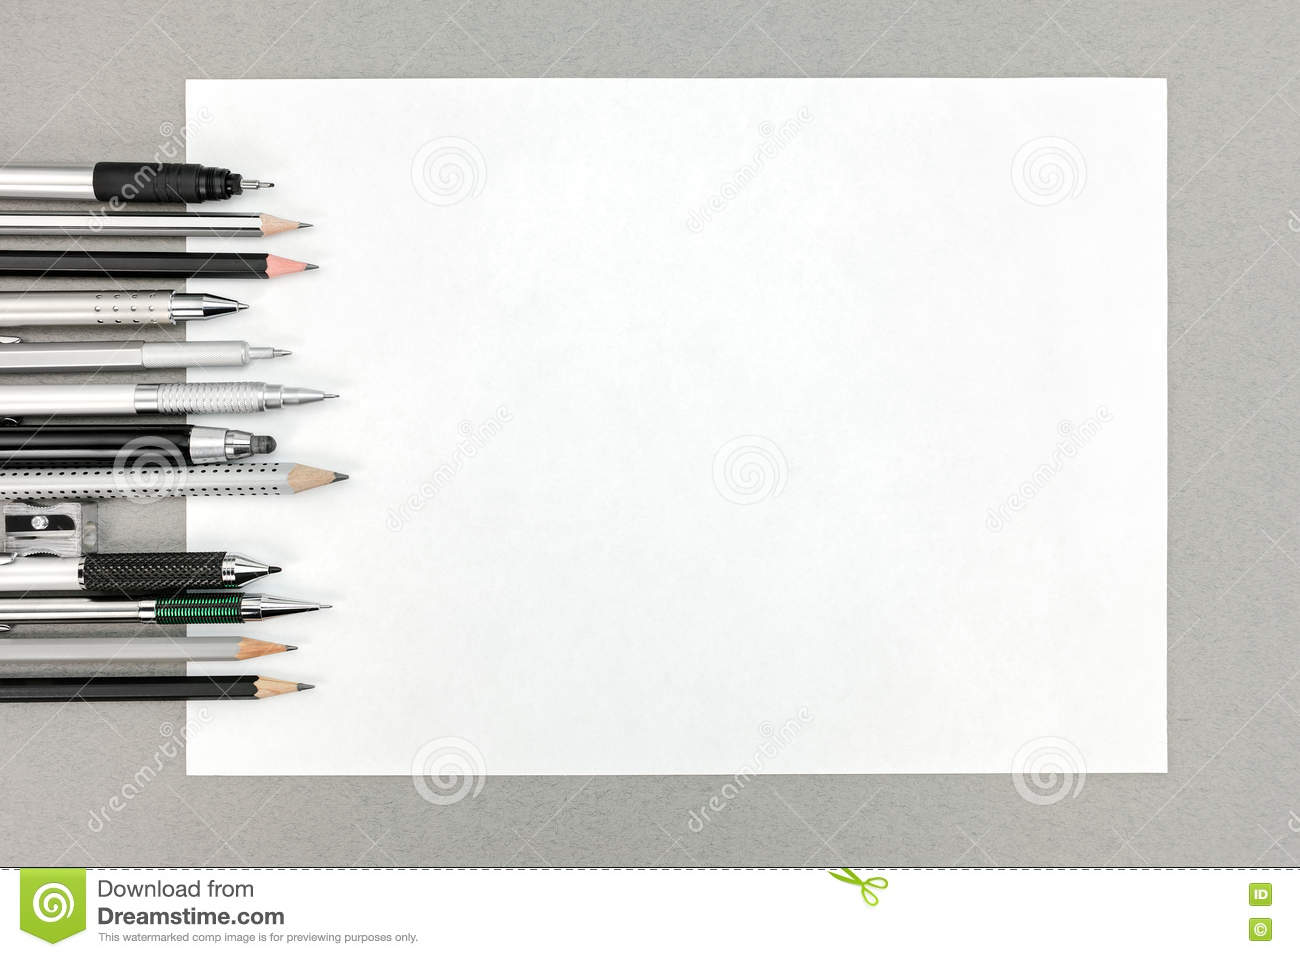 office drawing tools various drawing tools and blank sheet of paper on gray office de cafe lighting 8900 marrakech wall